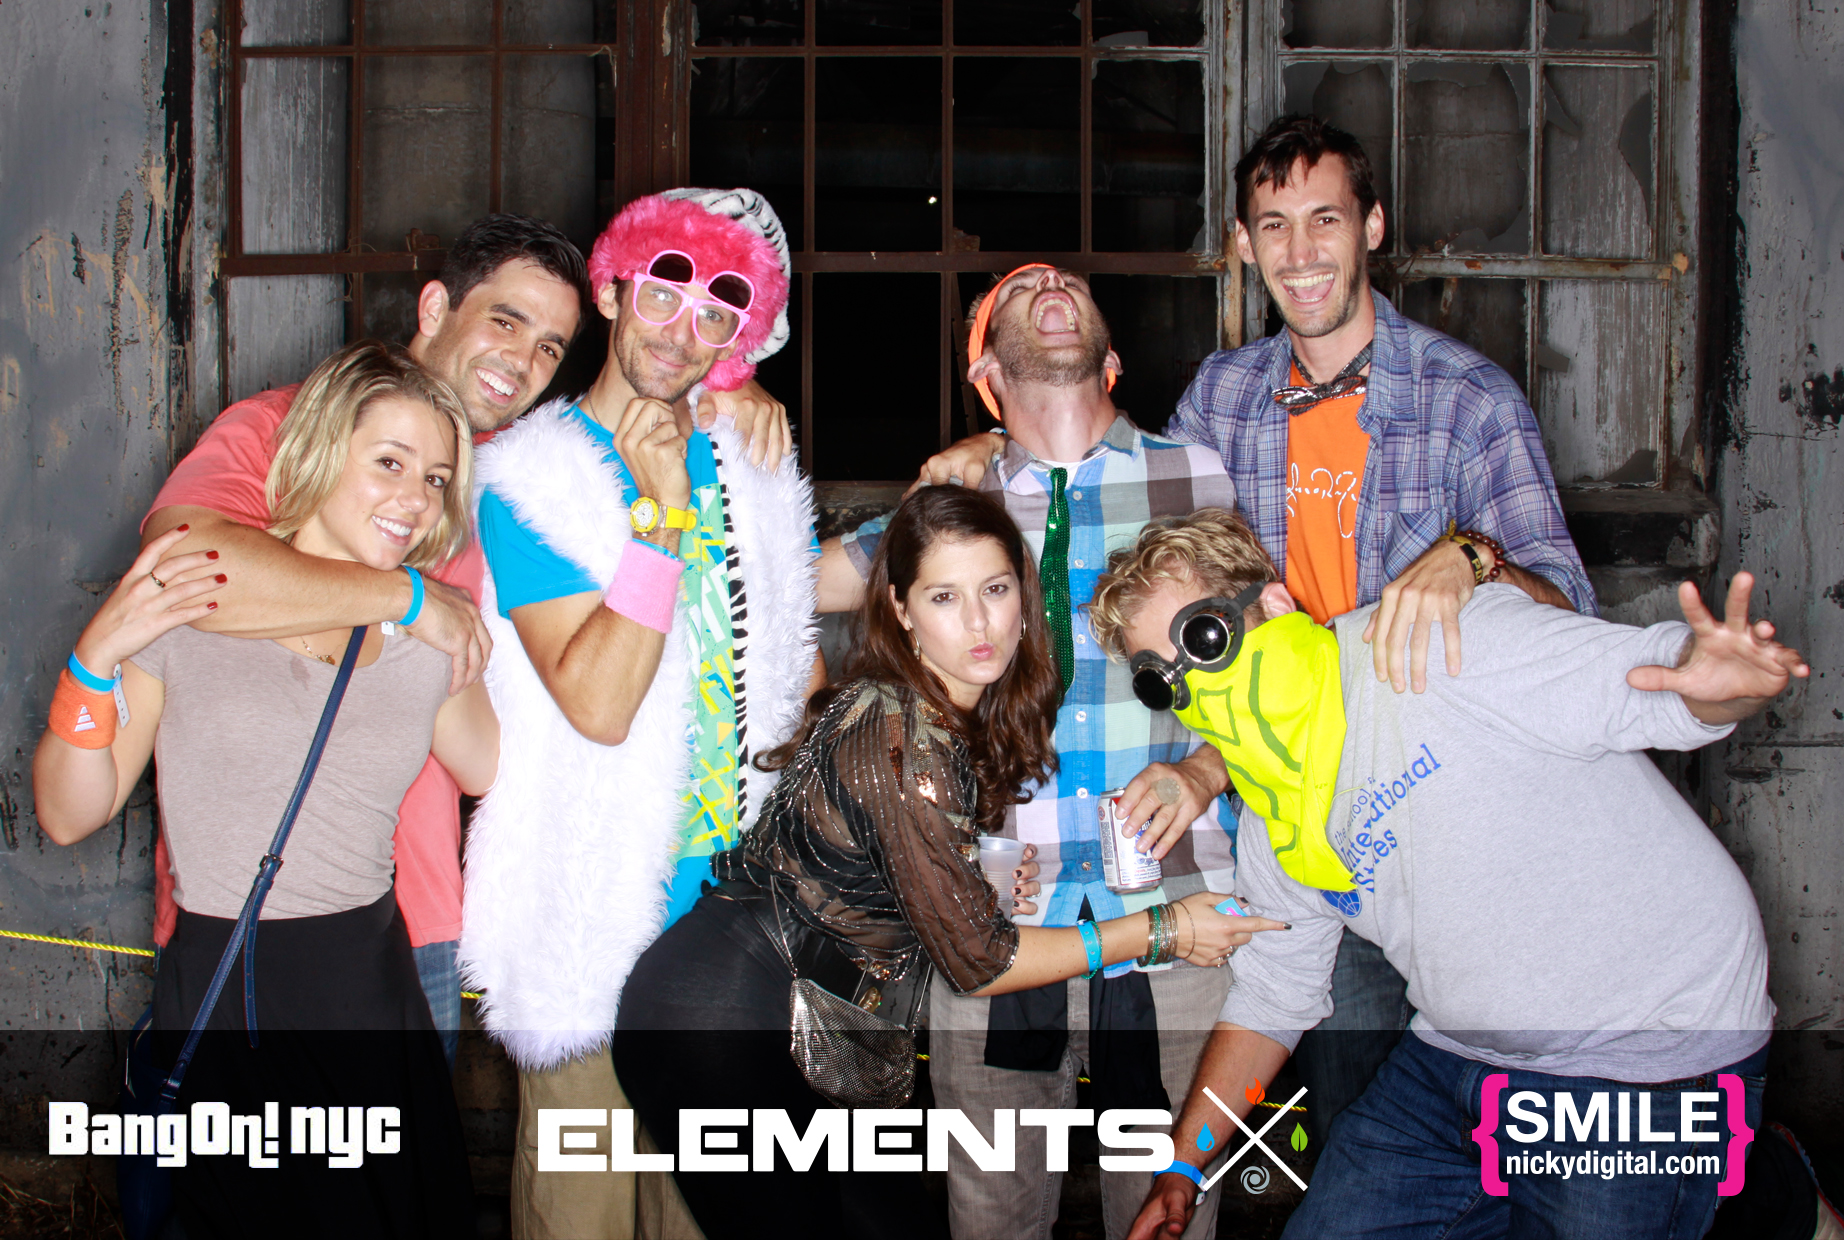 BangOn!NYC's Elements Music & Arts Festival Photo Booth on September 21, 2013